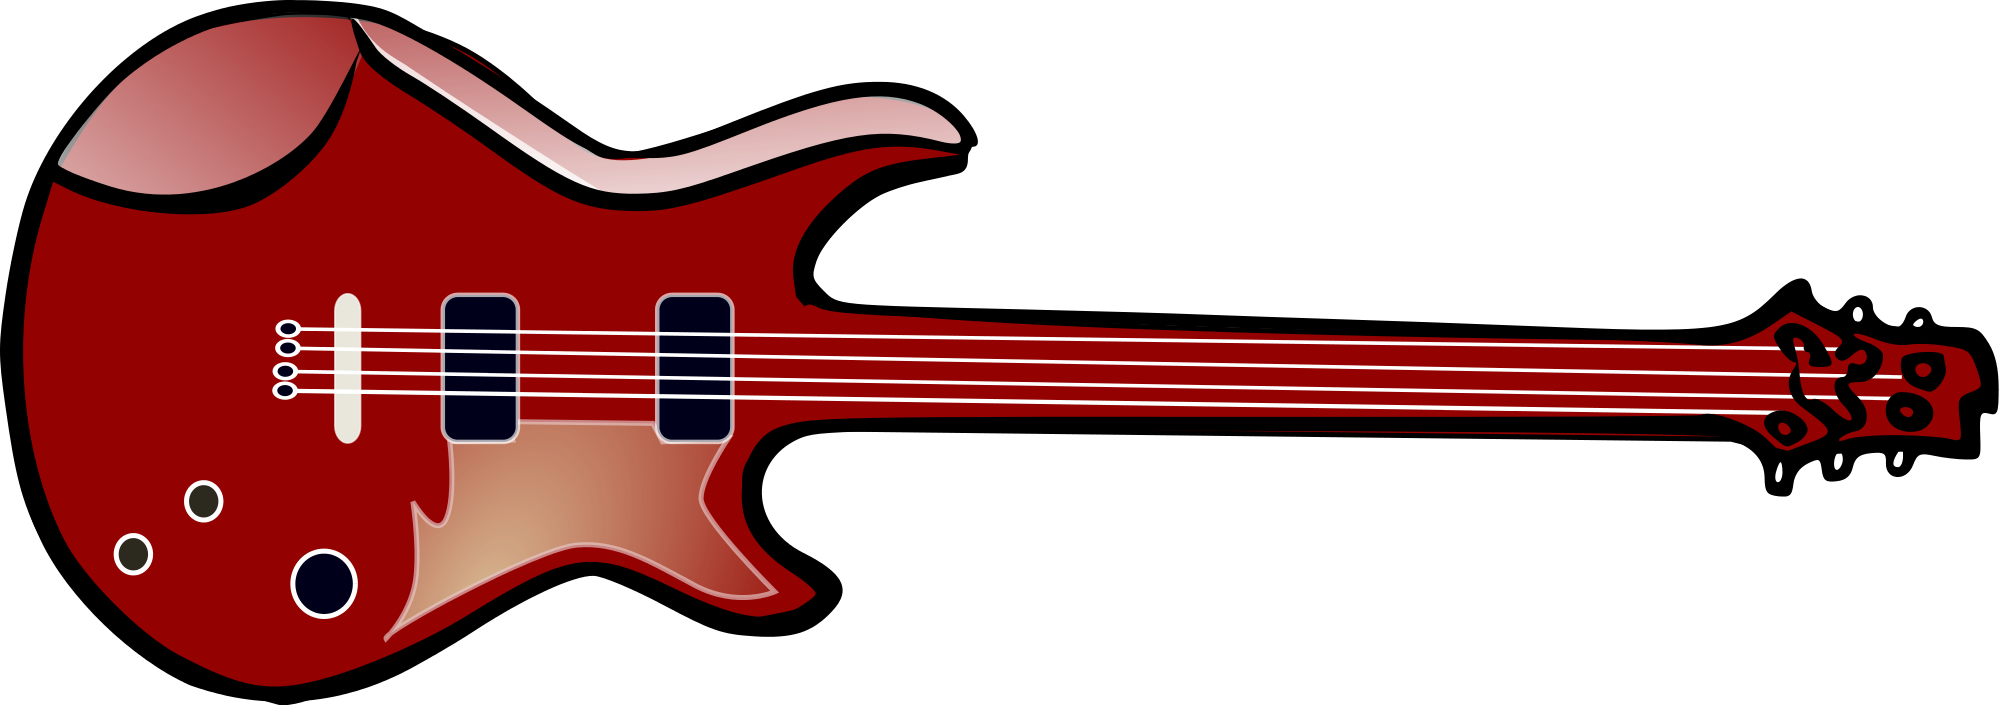 Clipart guitar file. Electric svg wikimedia commons